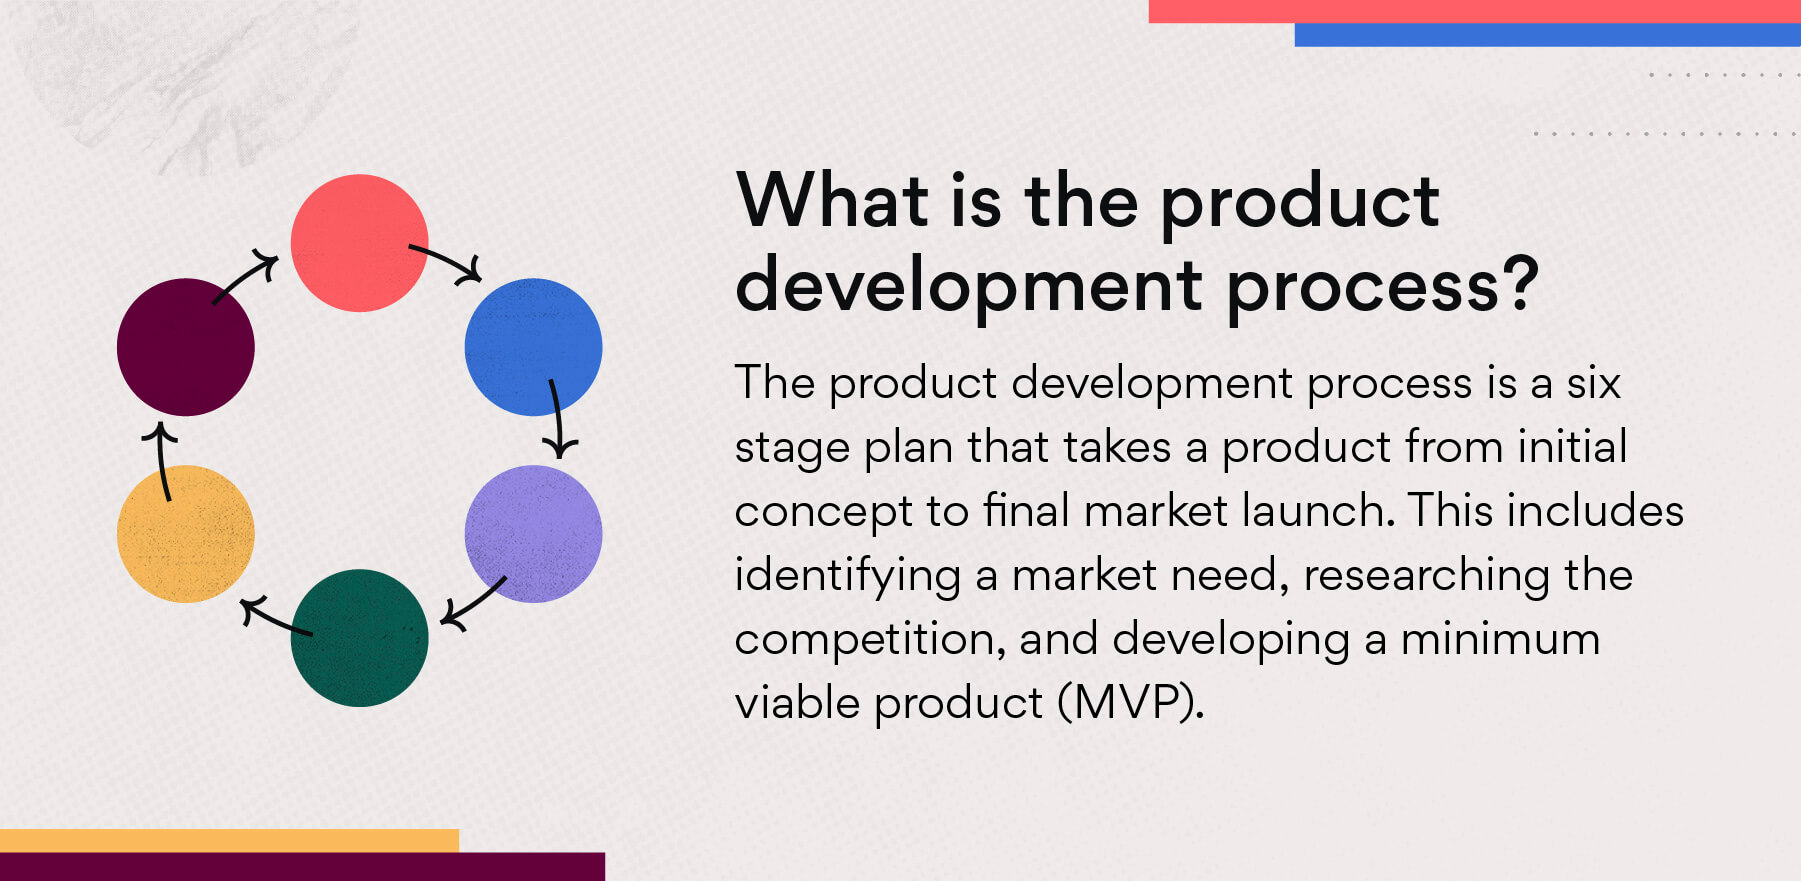 What is the product development process?